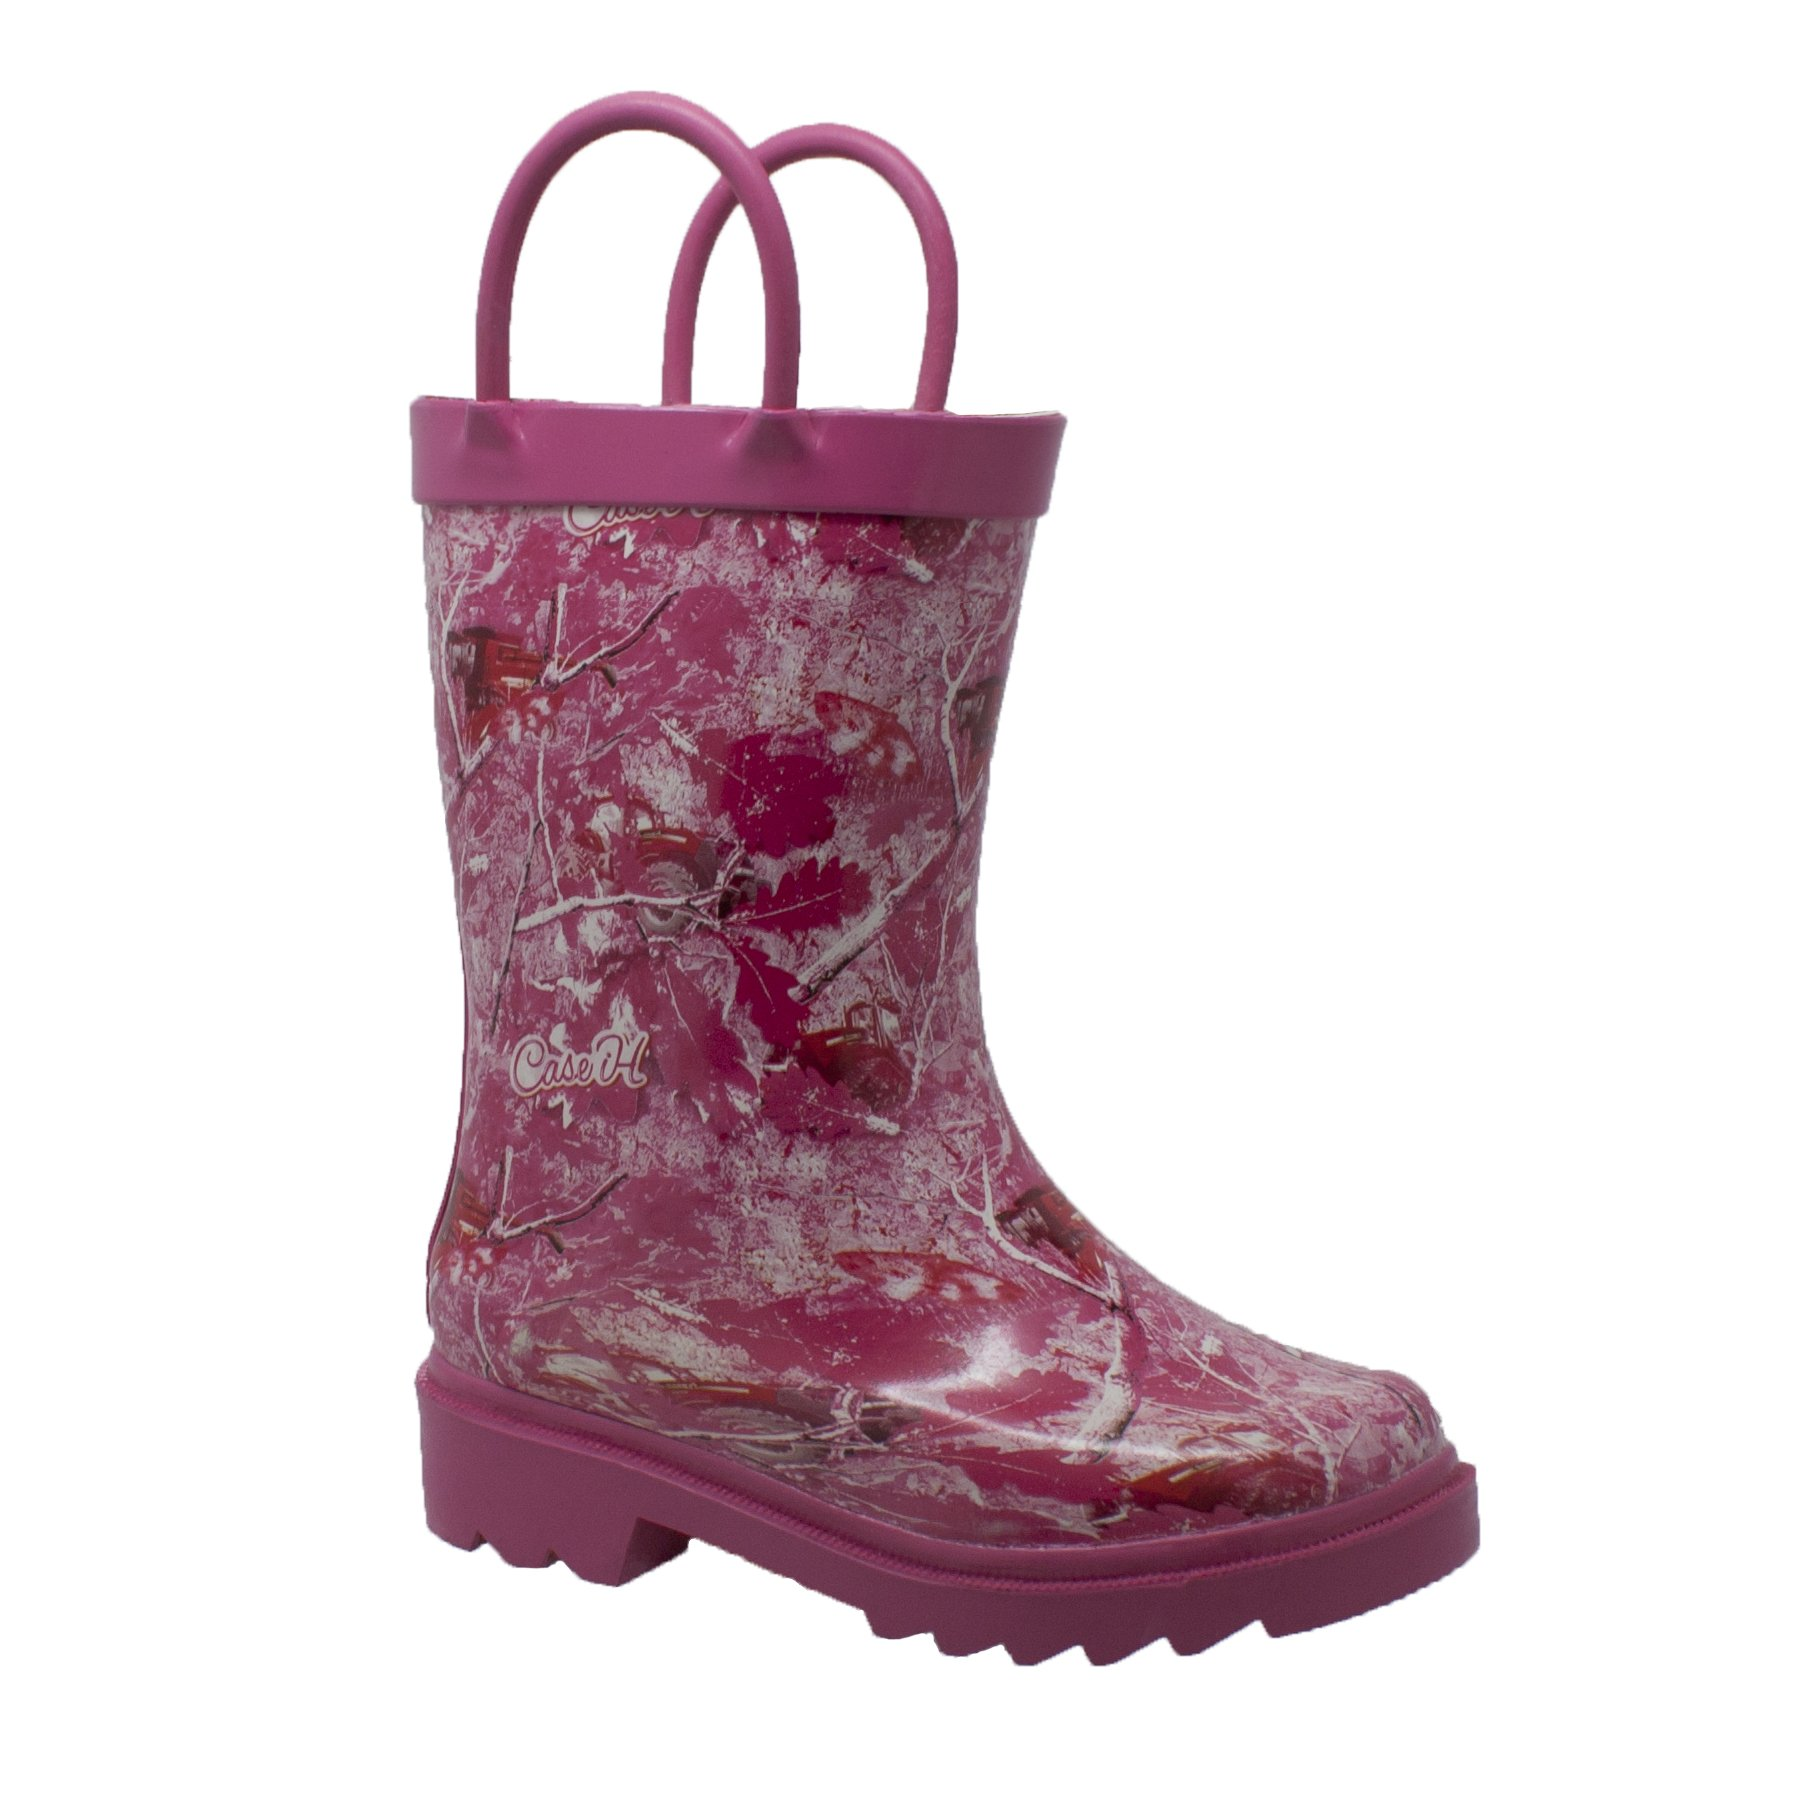 Case IH Camo Rubber Boot Girls' Toddler-Youth Boot 6 M US Toddler Pink